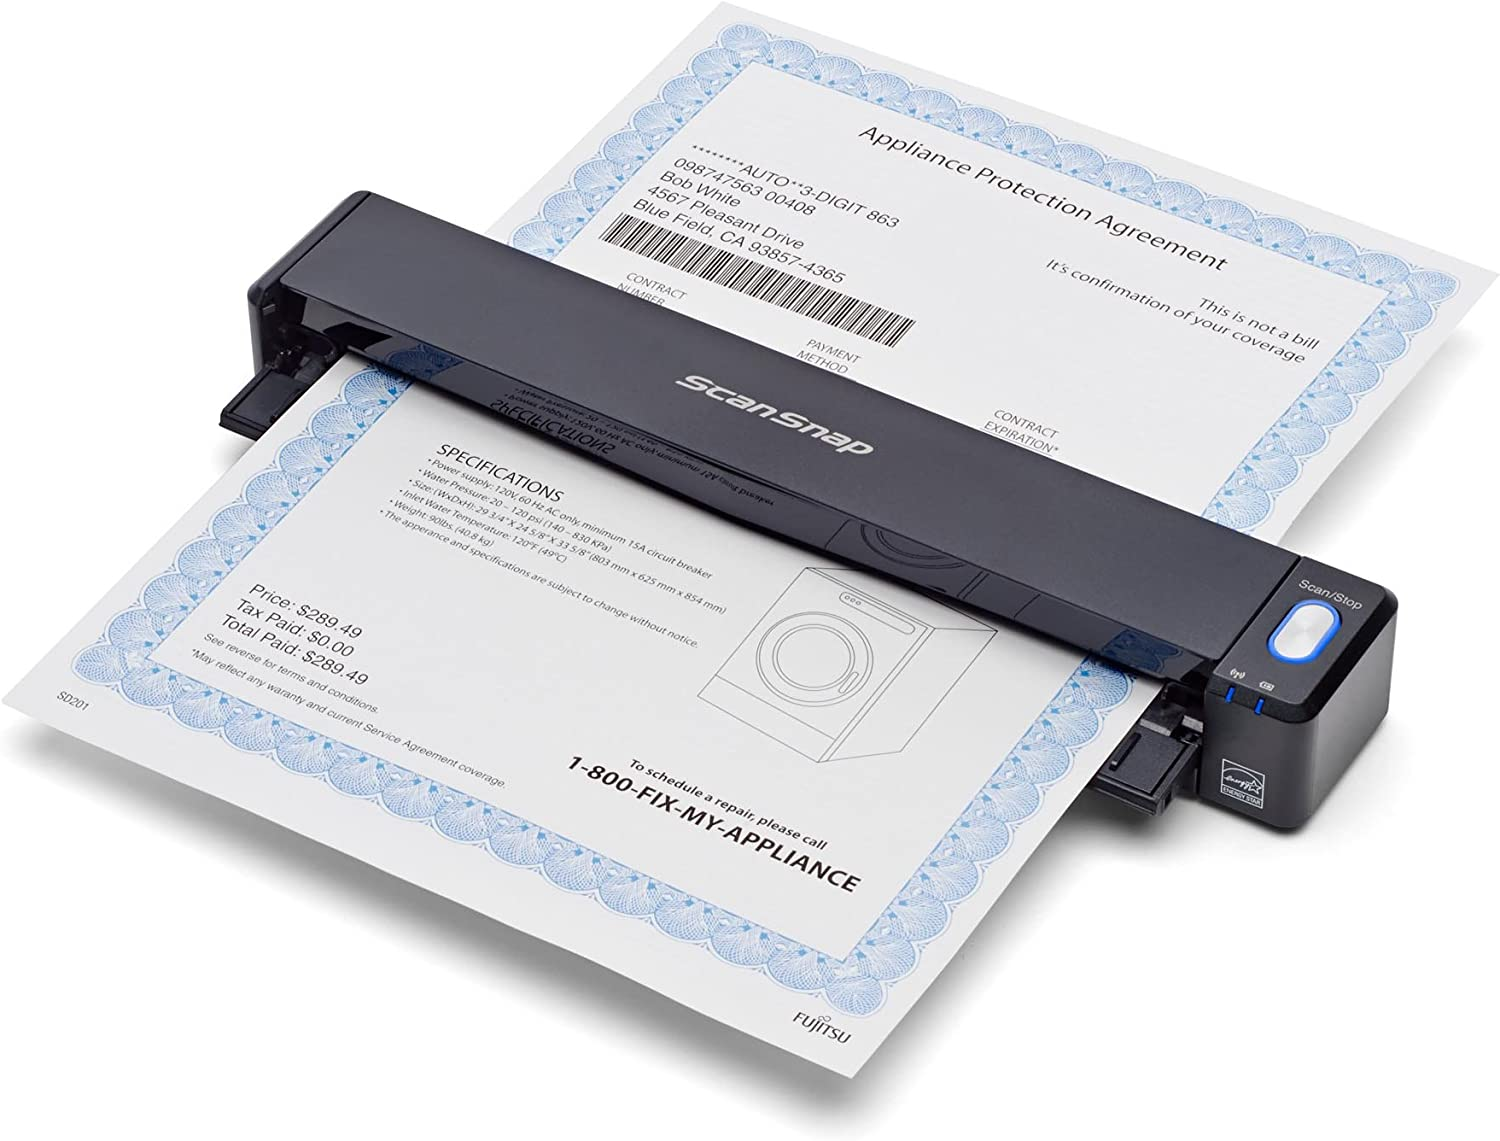 Fujitsu PA03688-B005 ScanSnap iX100 Wireless Mobile Scanner for Mac and PC,Black